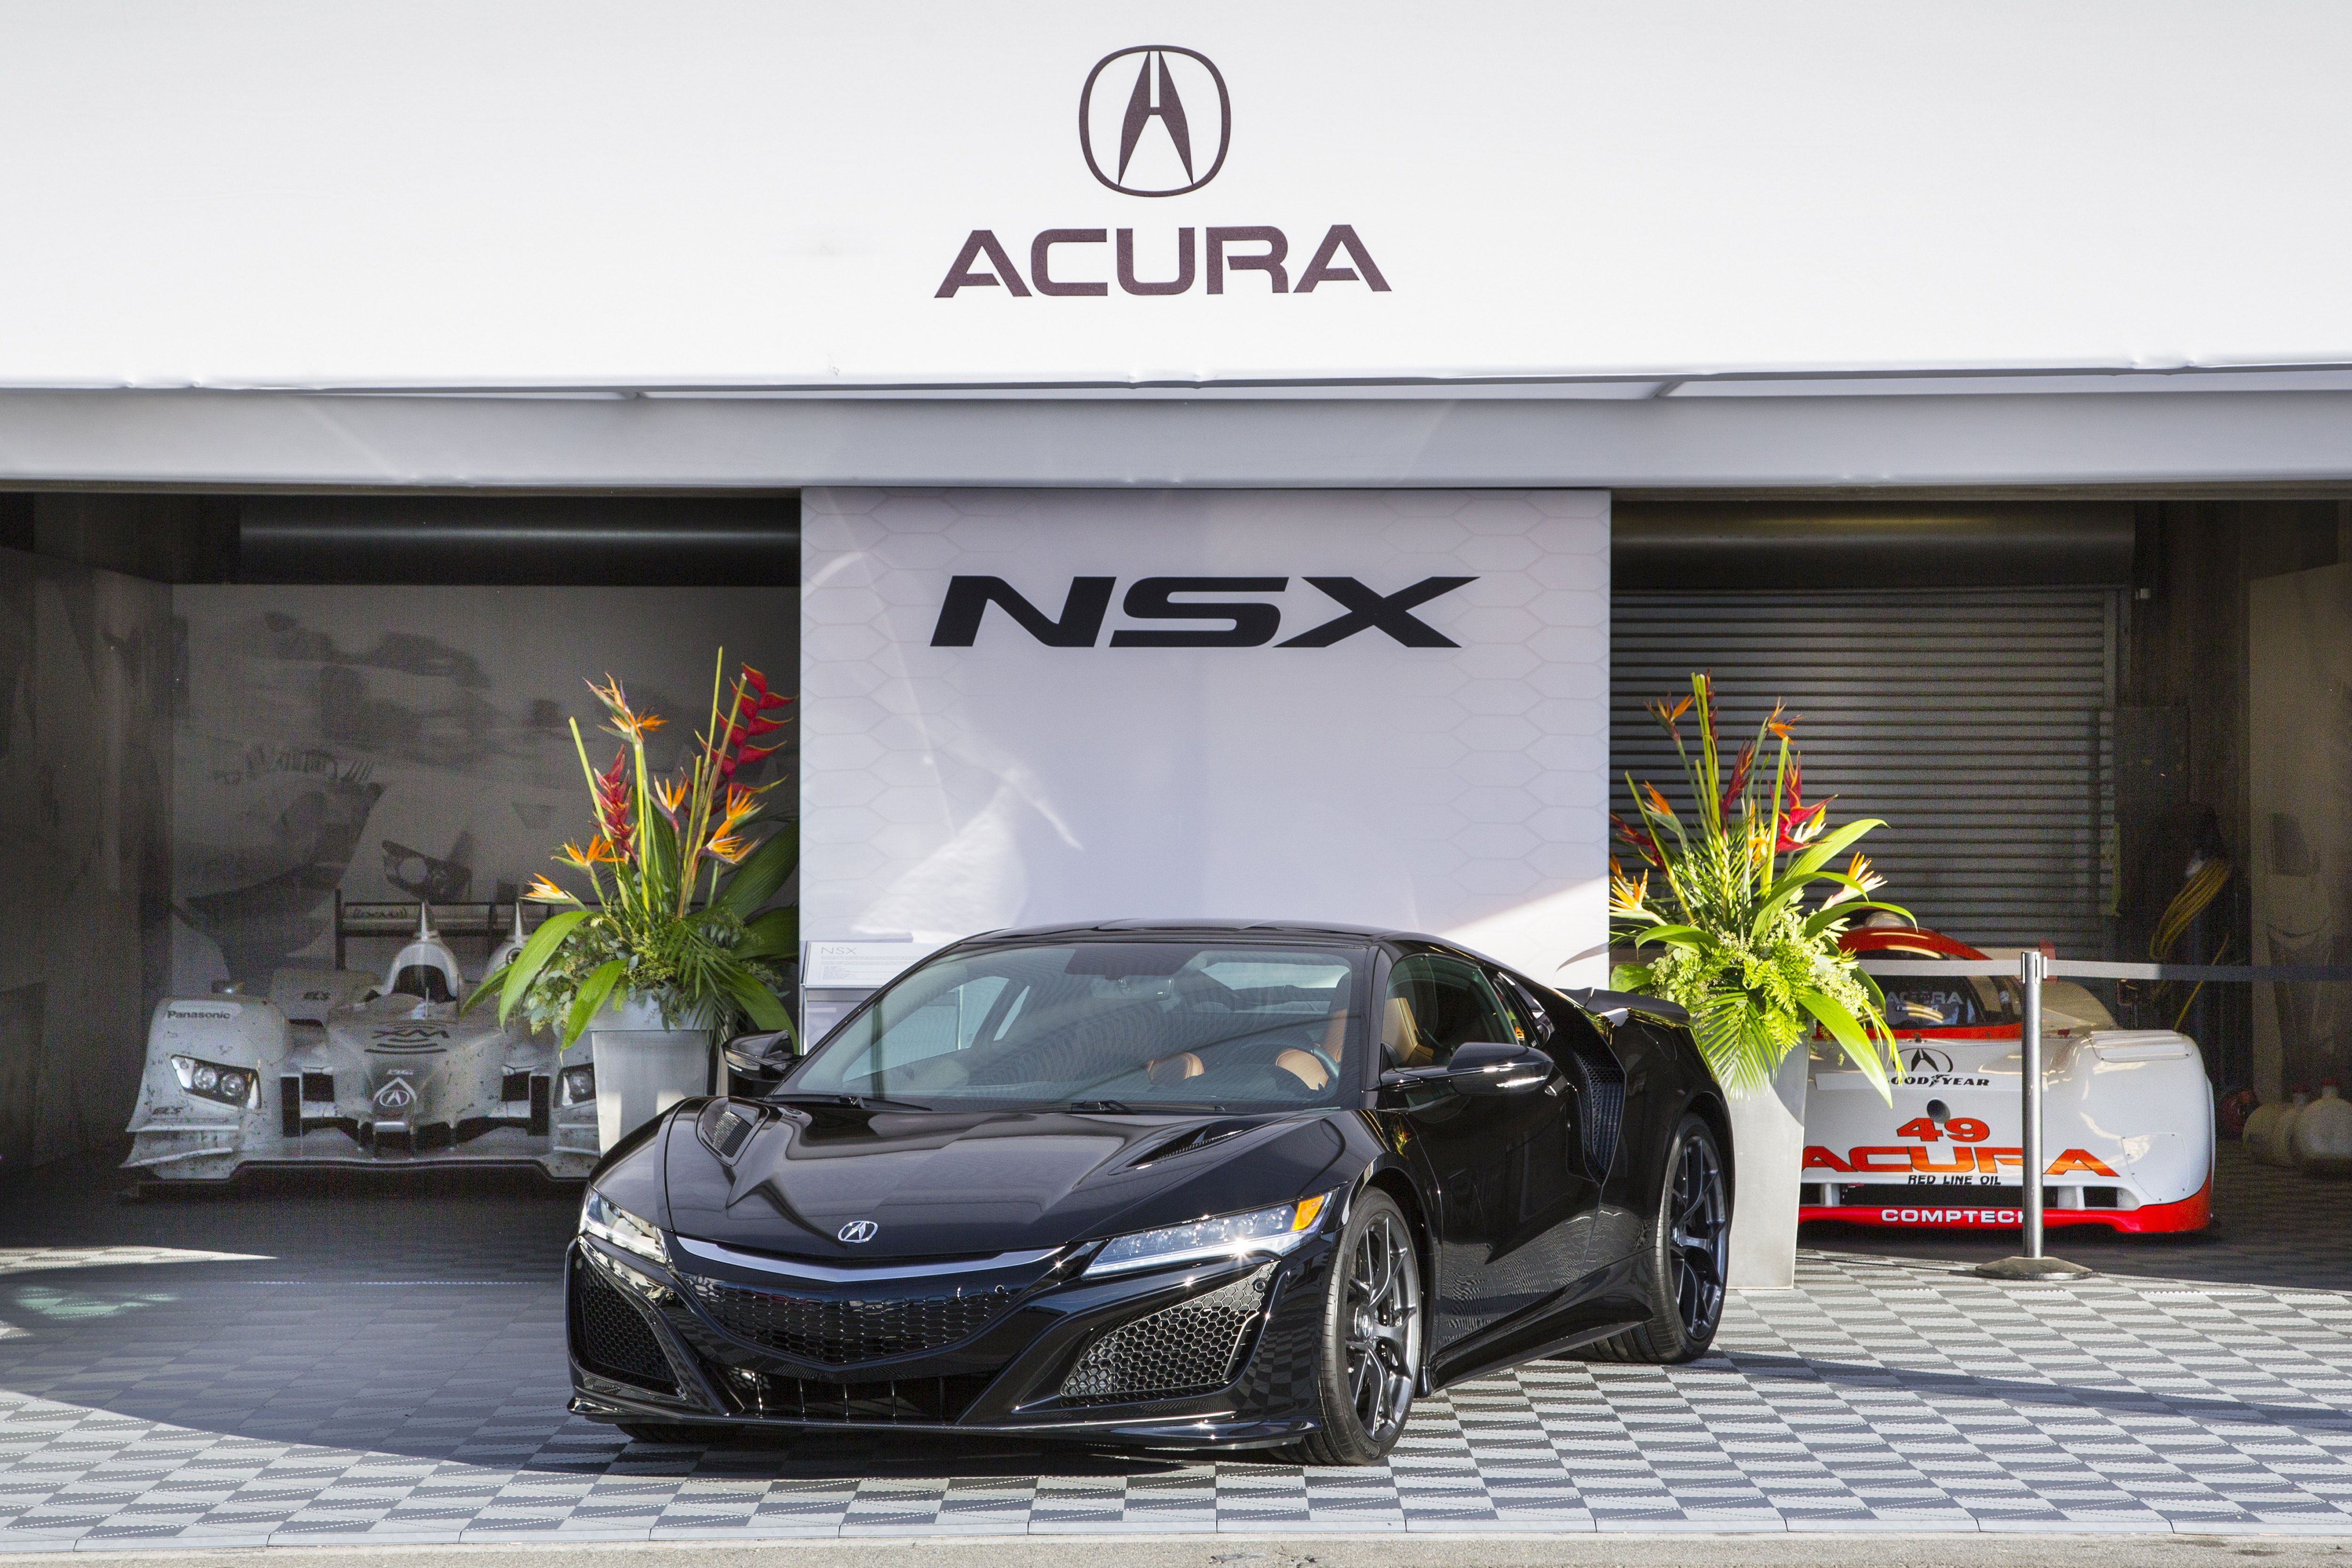 Pin by il on Acura Cars Pinterest